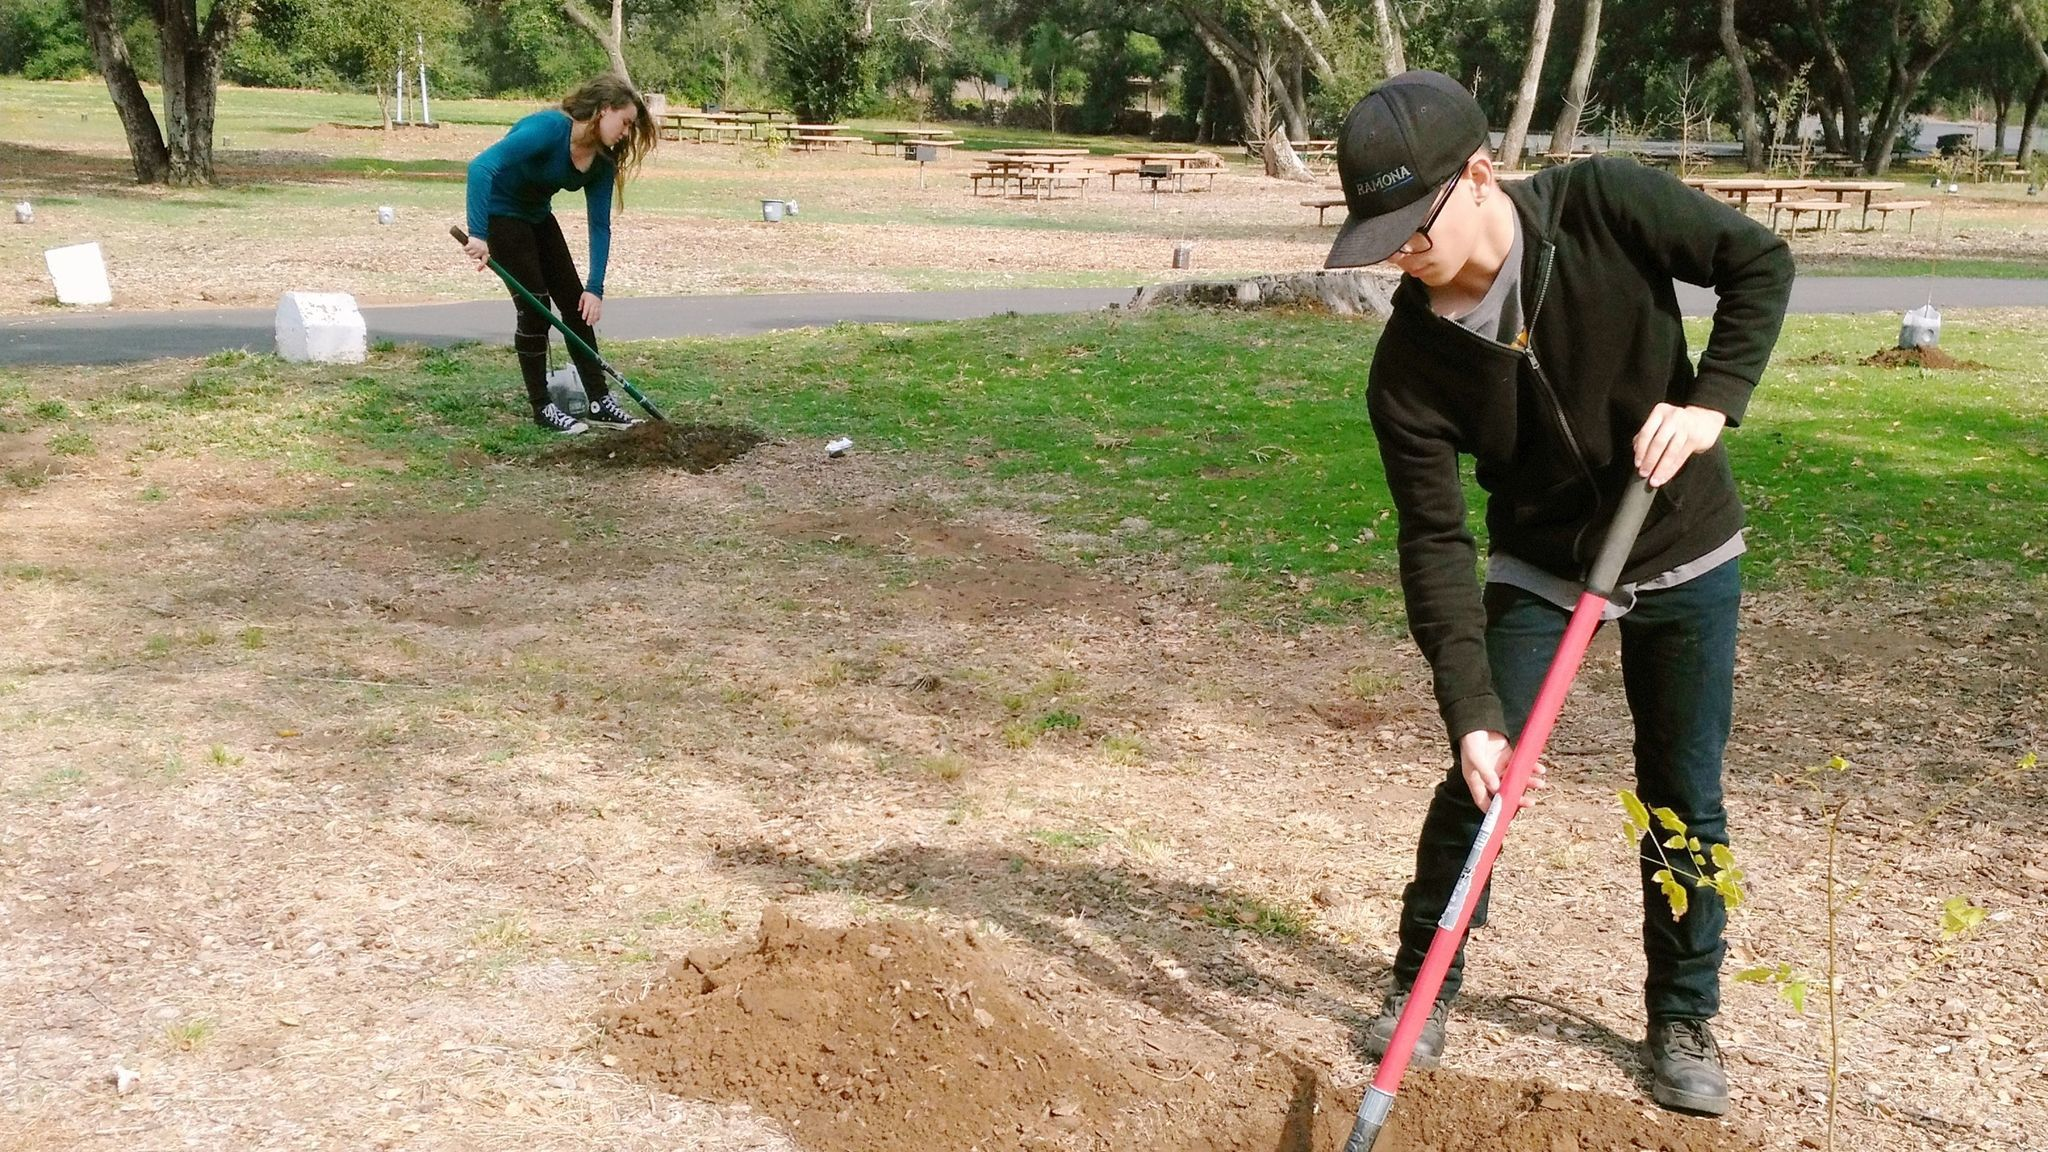 Sydney Marshall, 15, and Aiden Valverde, 14, are among Ramona High School students digging holes for new trees at Dos Picos County Park.